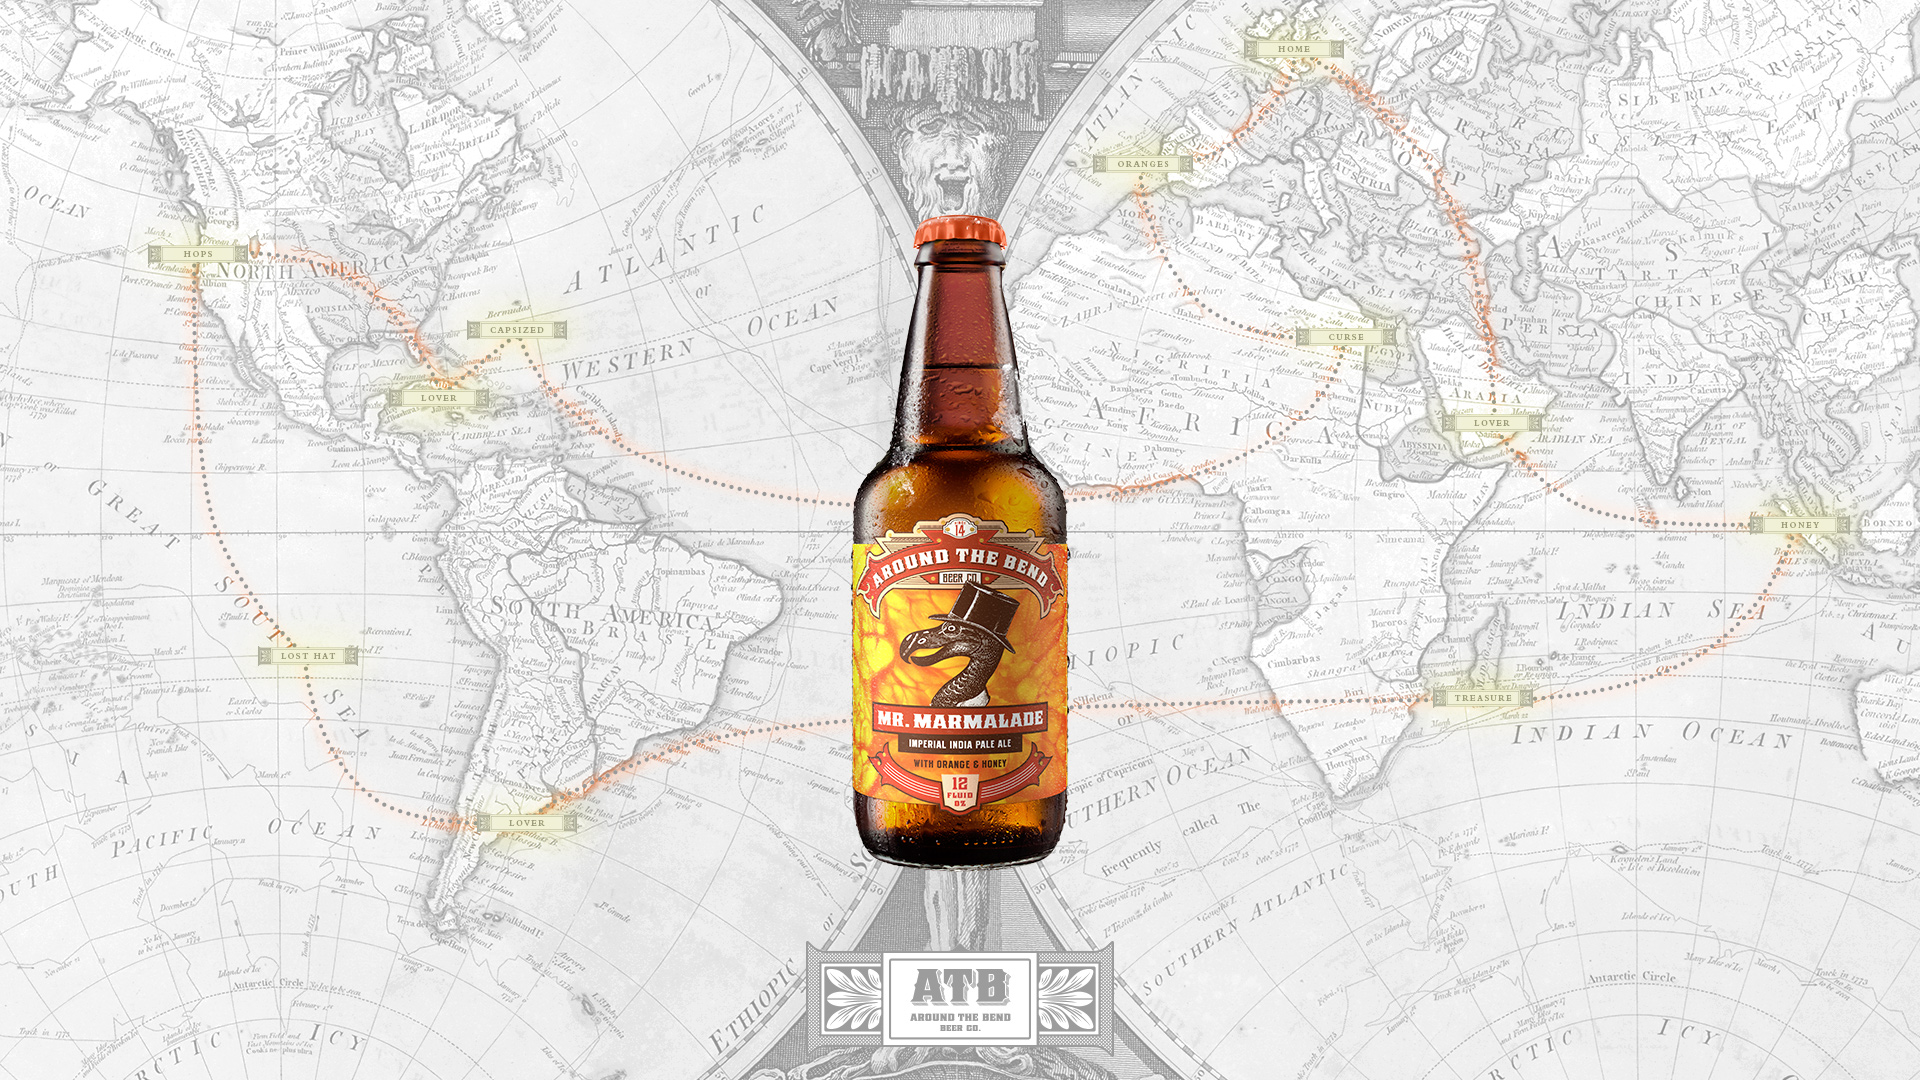 Around_The_Bend_Beer_Company_Bottles_Mr_Marmalade